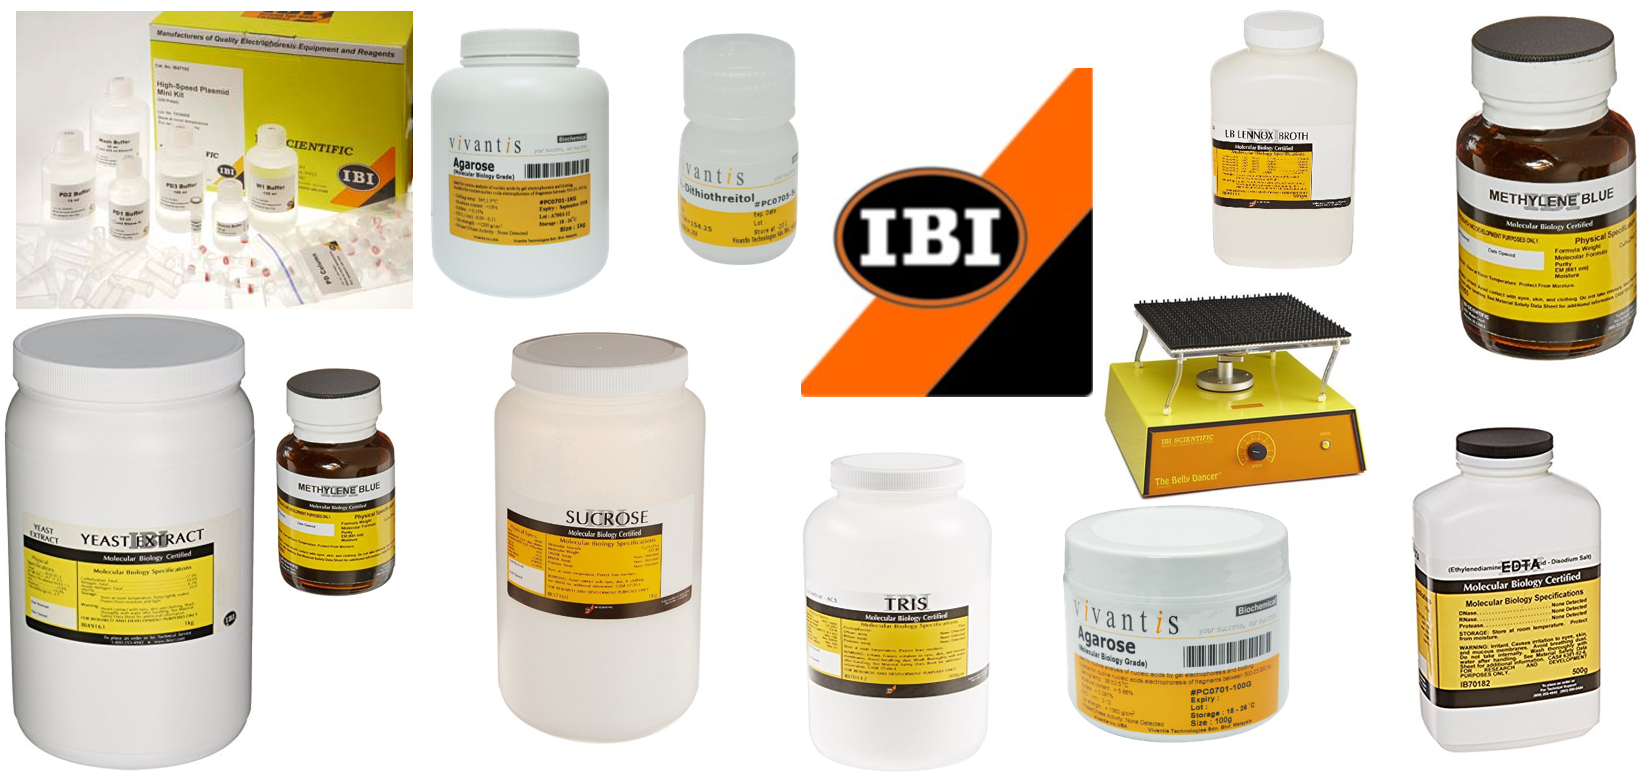 ibi scientific